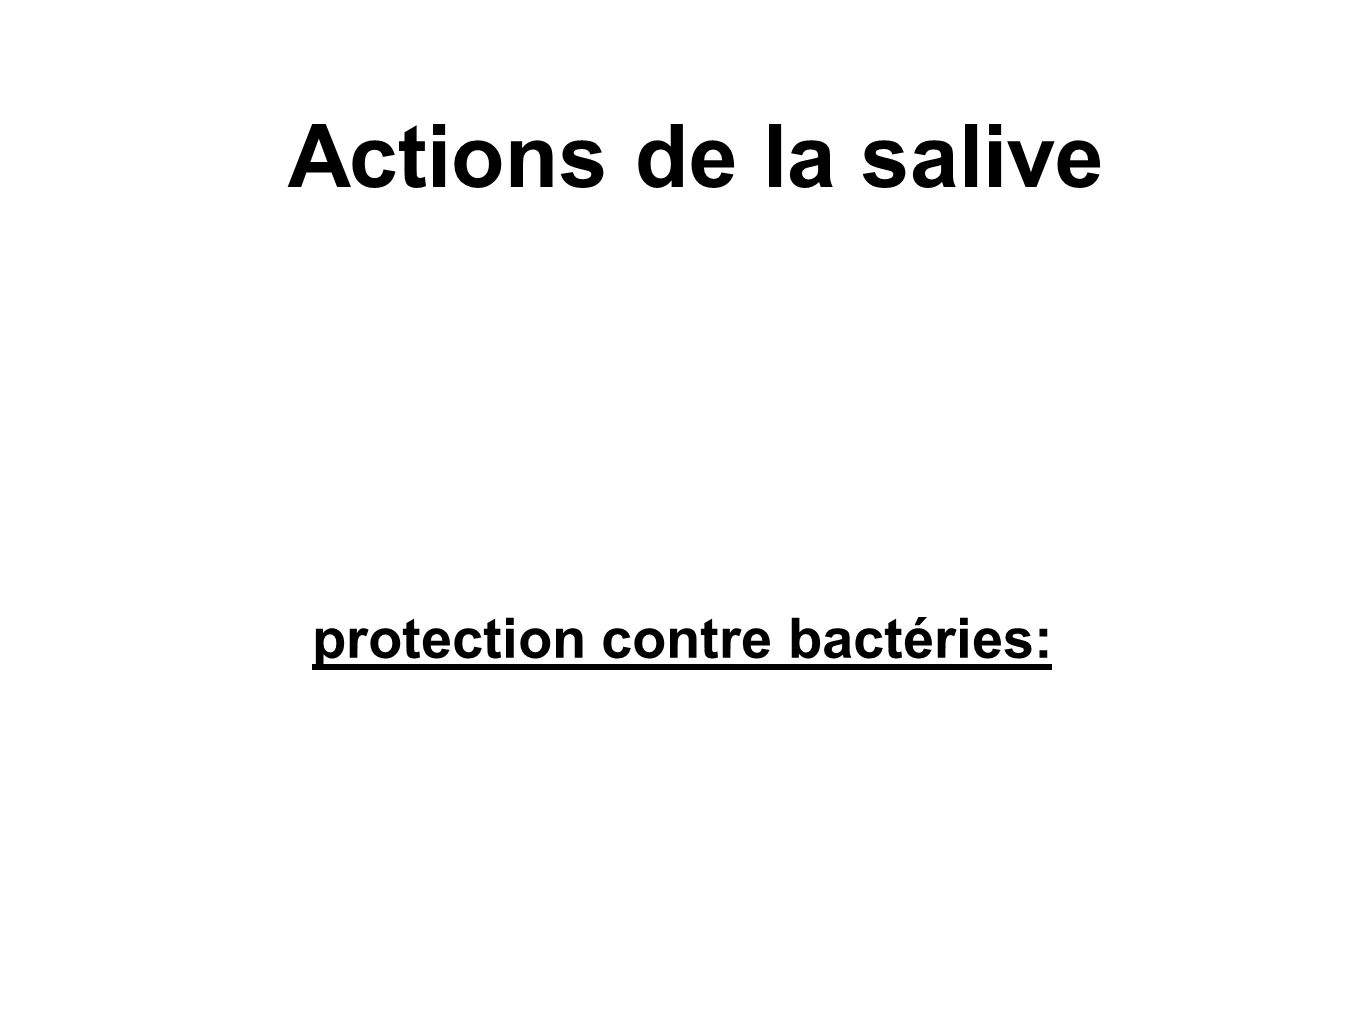 protection contre bactéries: